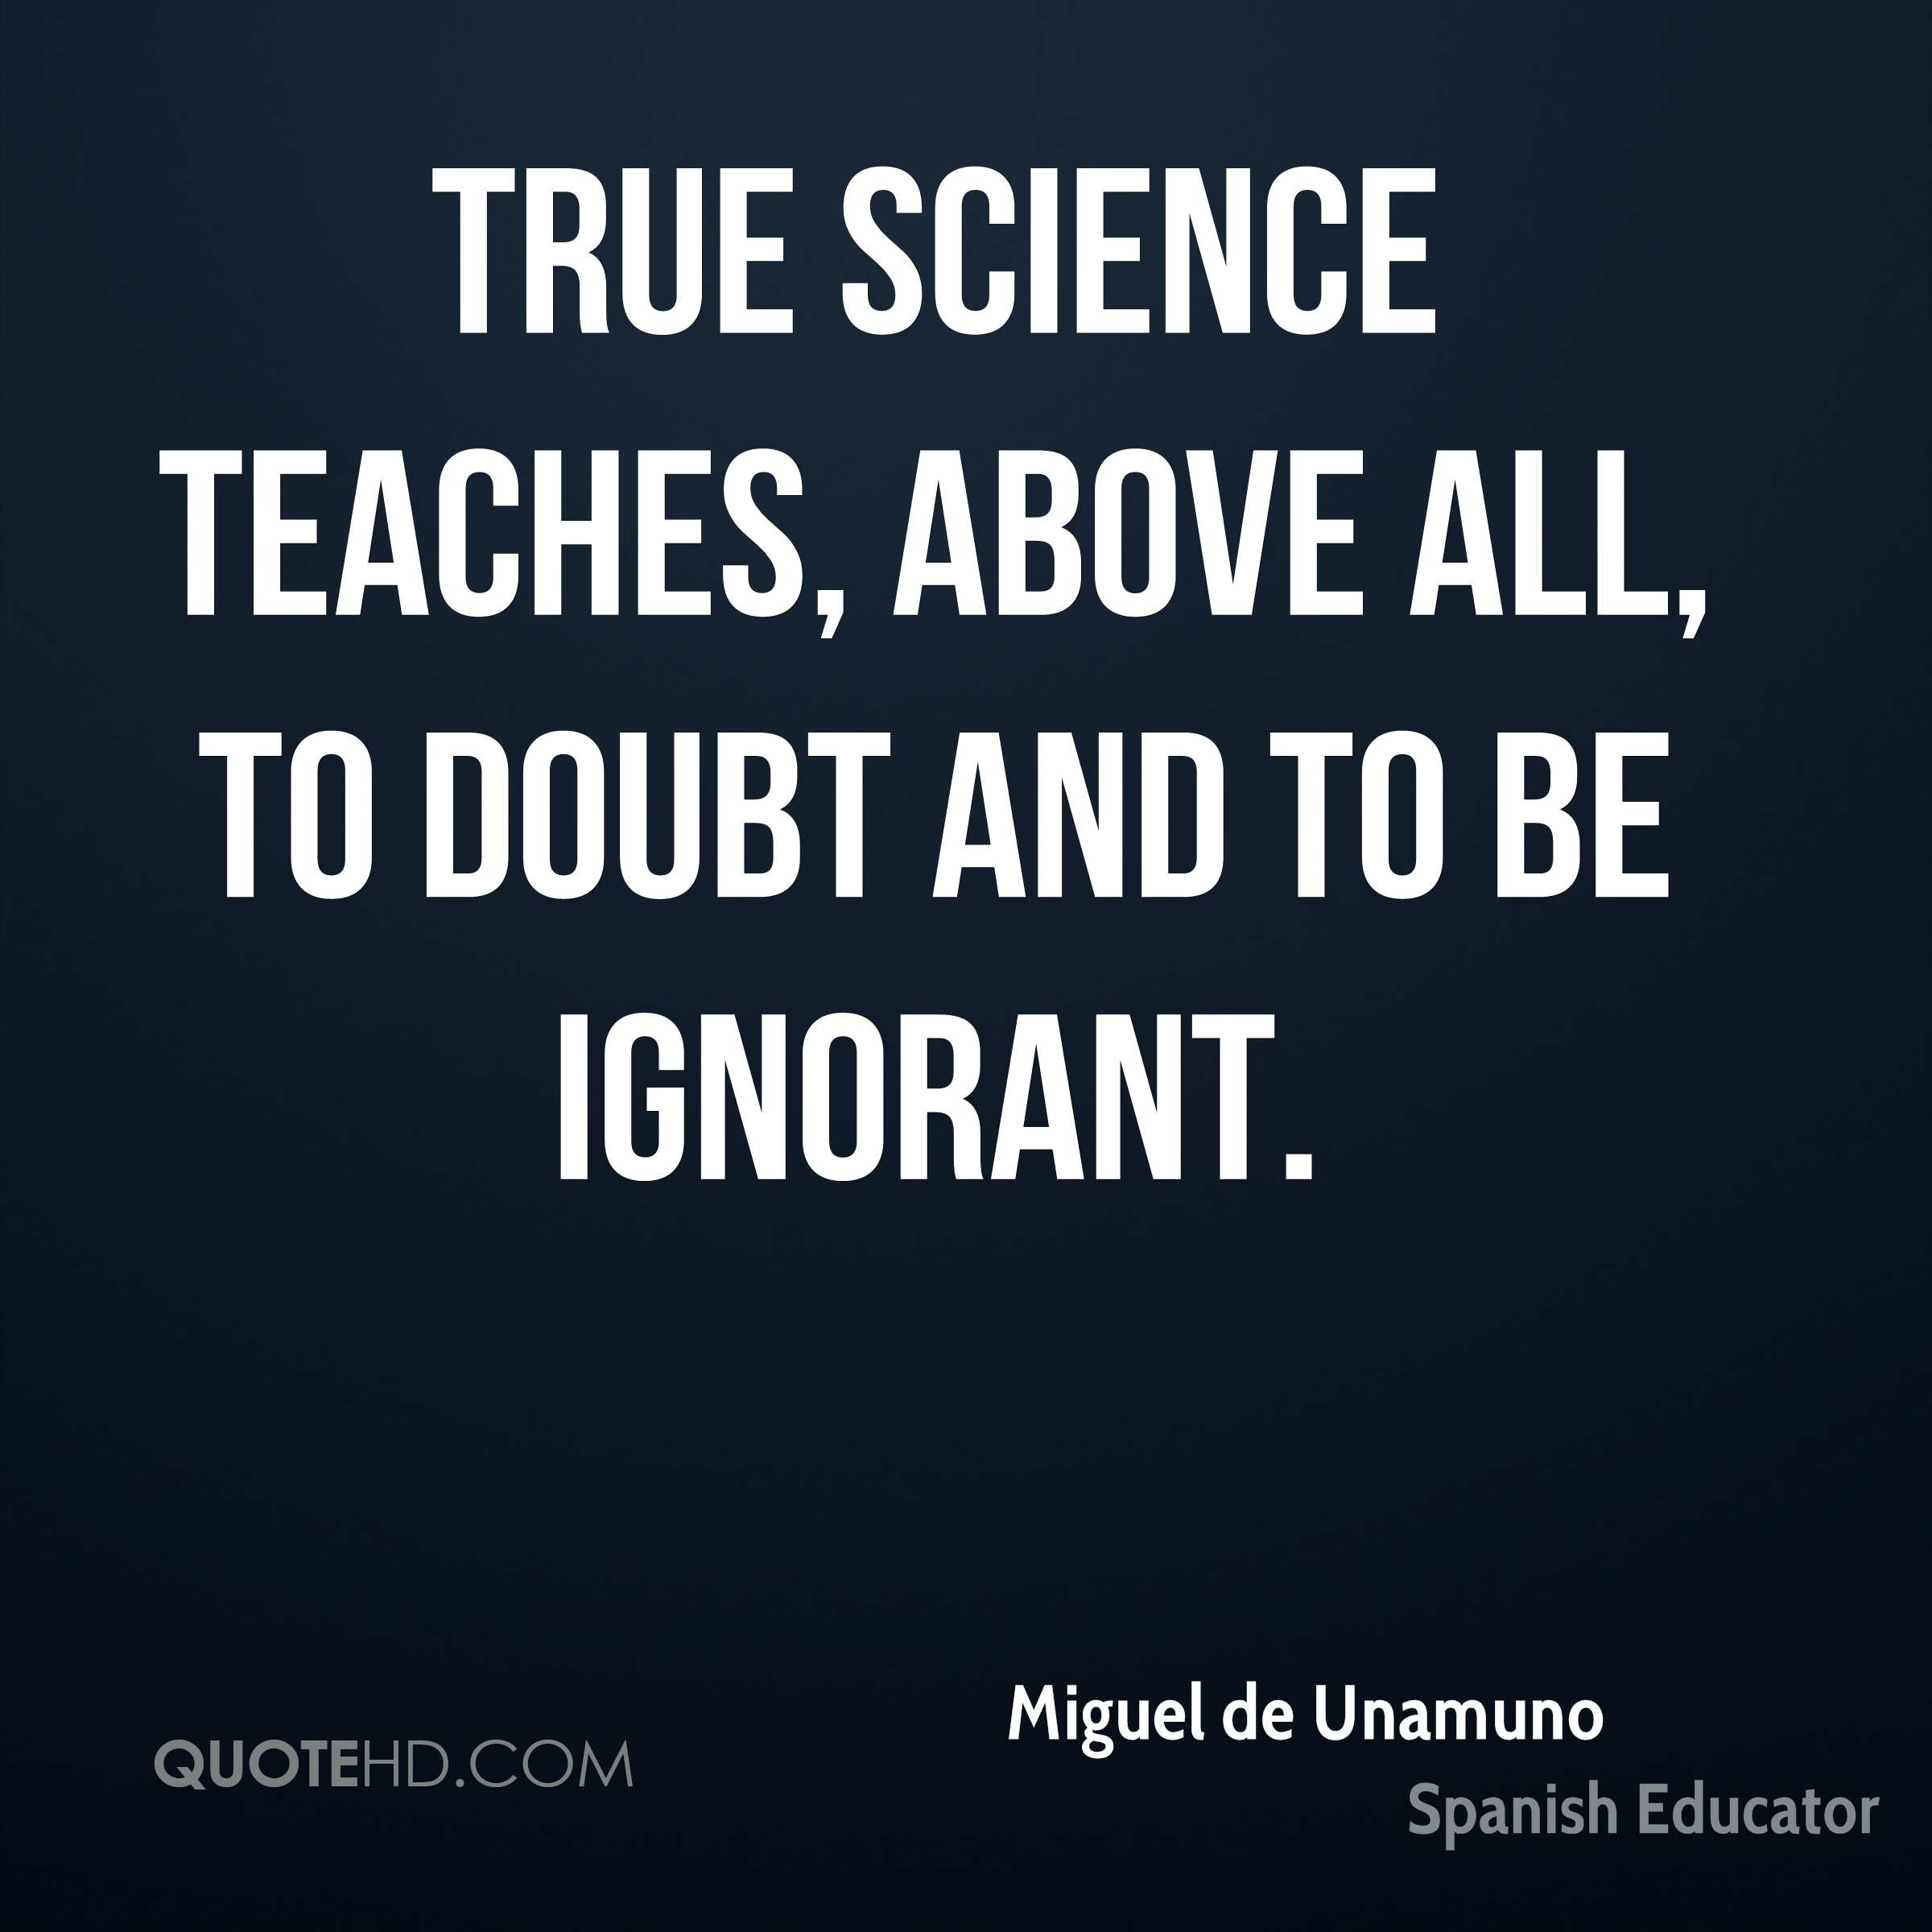 True science teaches, above all, to doubt and to be ignorant.